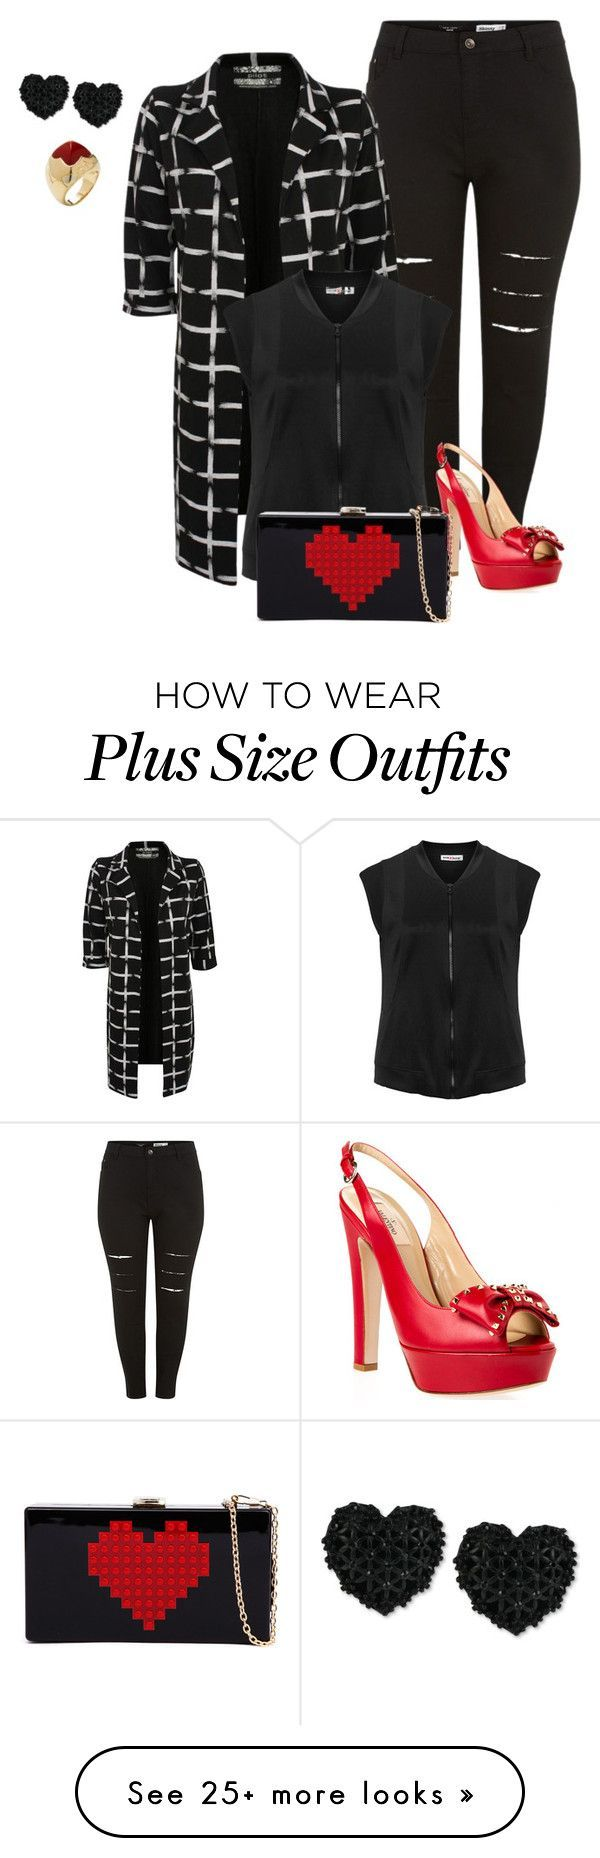 """""""plus size vday make it pop"""" by kristie-payne on Polyvore featuring Pilot, Valentino, Maxima, Betsey Johnson, Bulgari, women's clothing, women, female, woman and misses"""